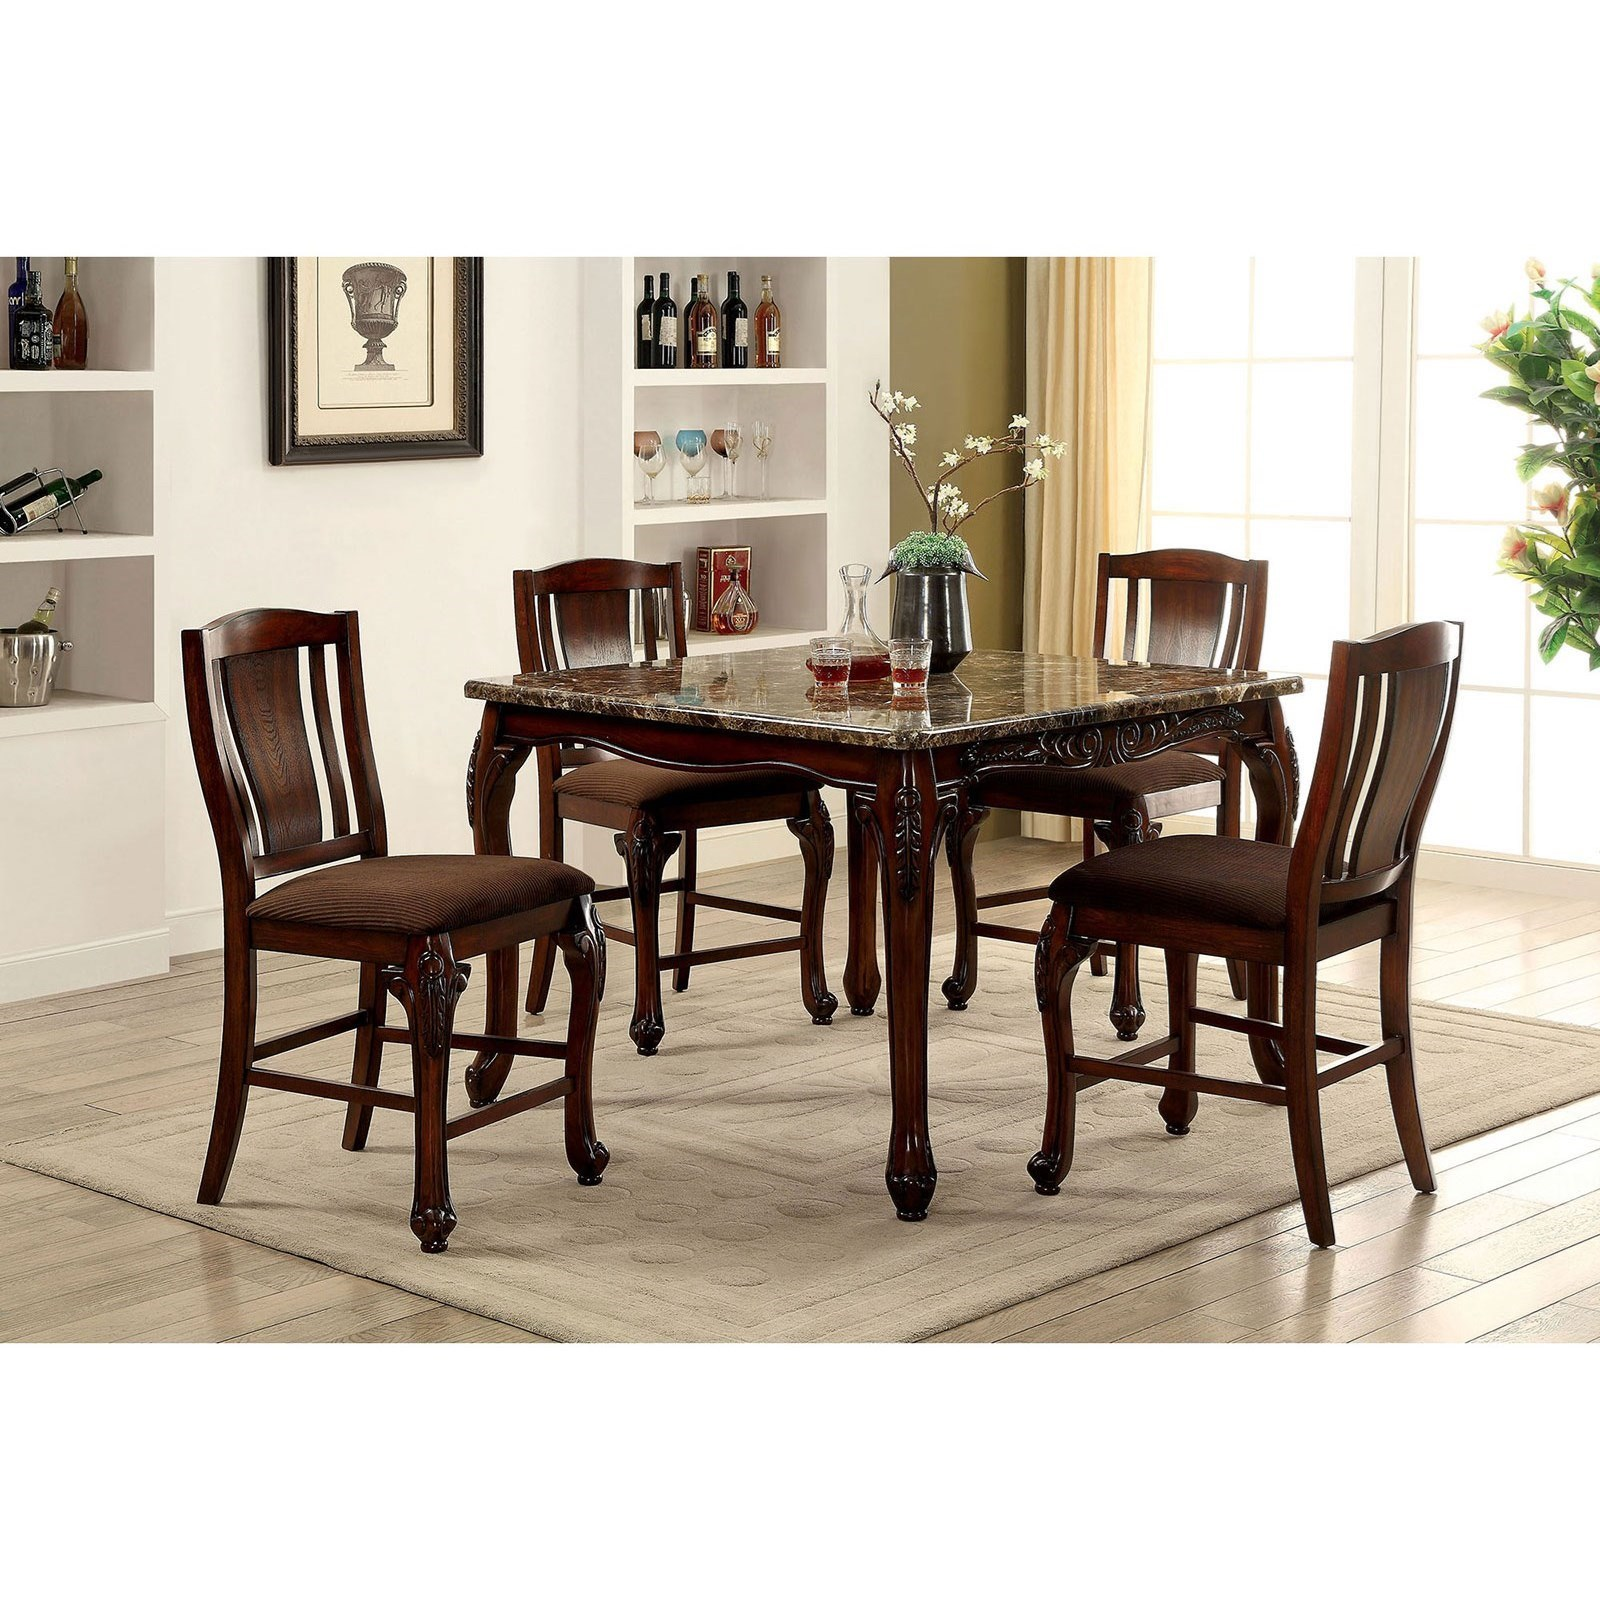 Johannesburg Table + 9 Counter Ht. Chairs